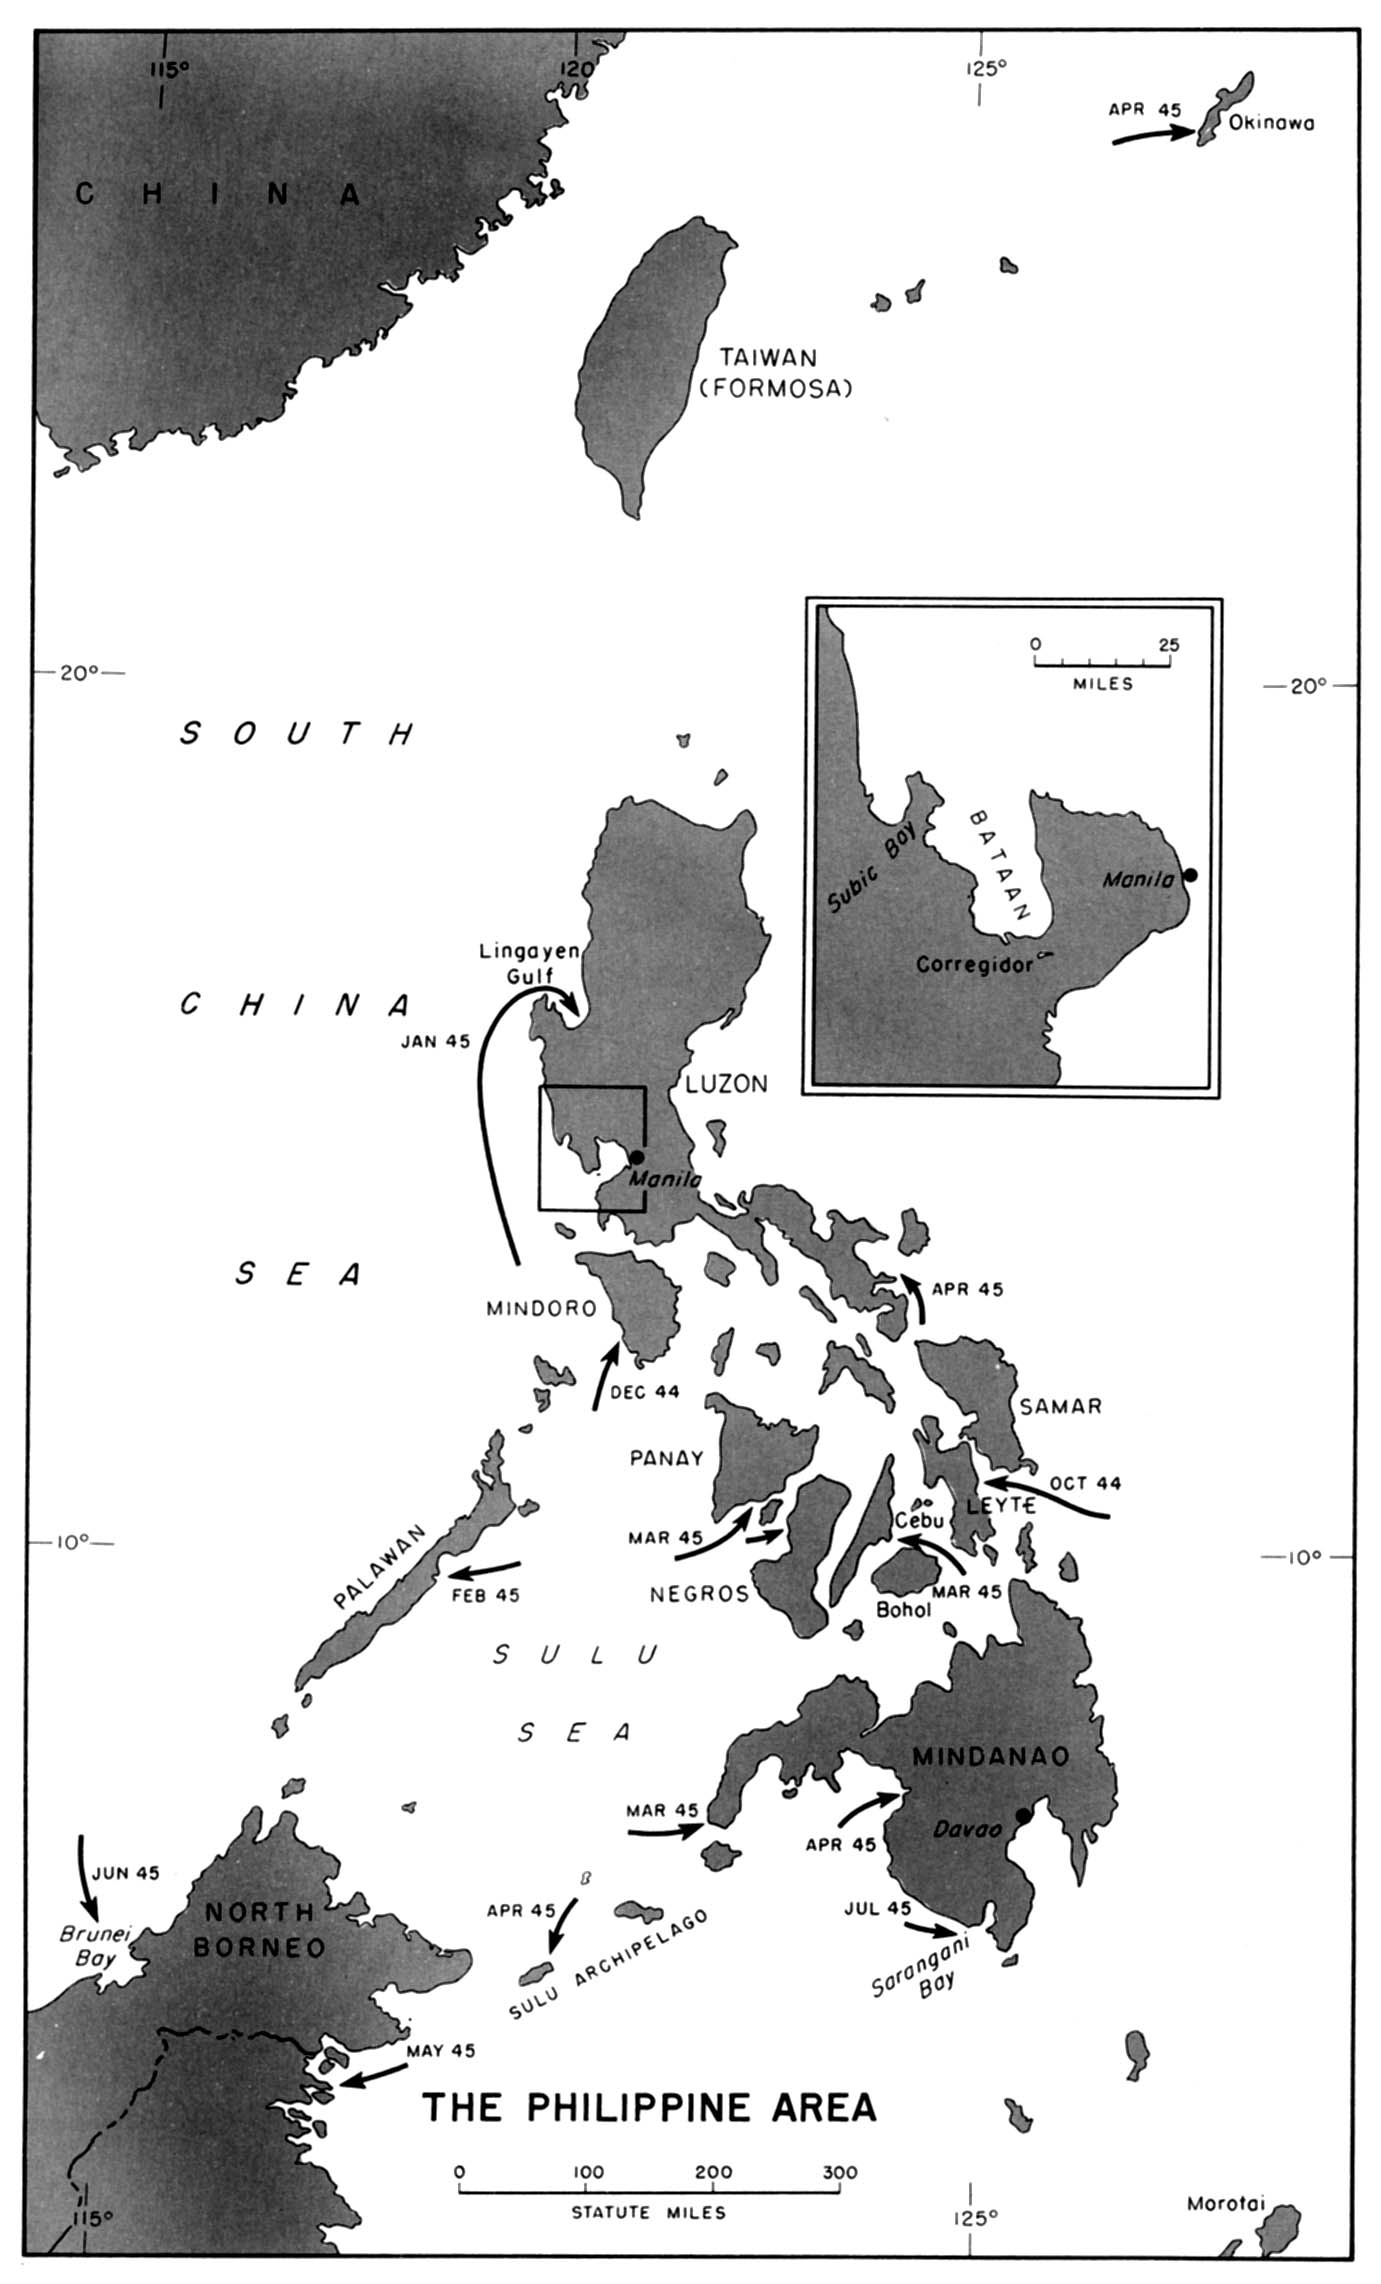 Map 44 The Philippine Area